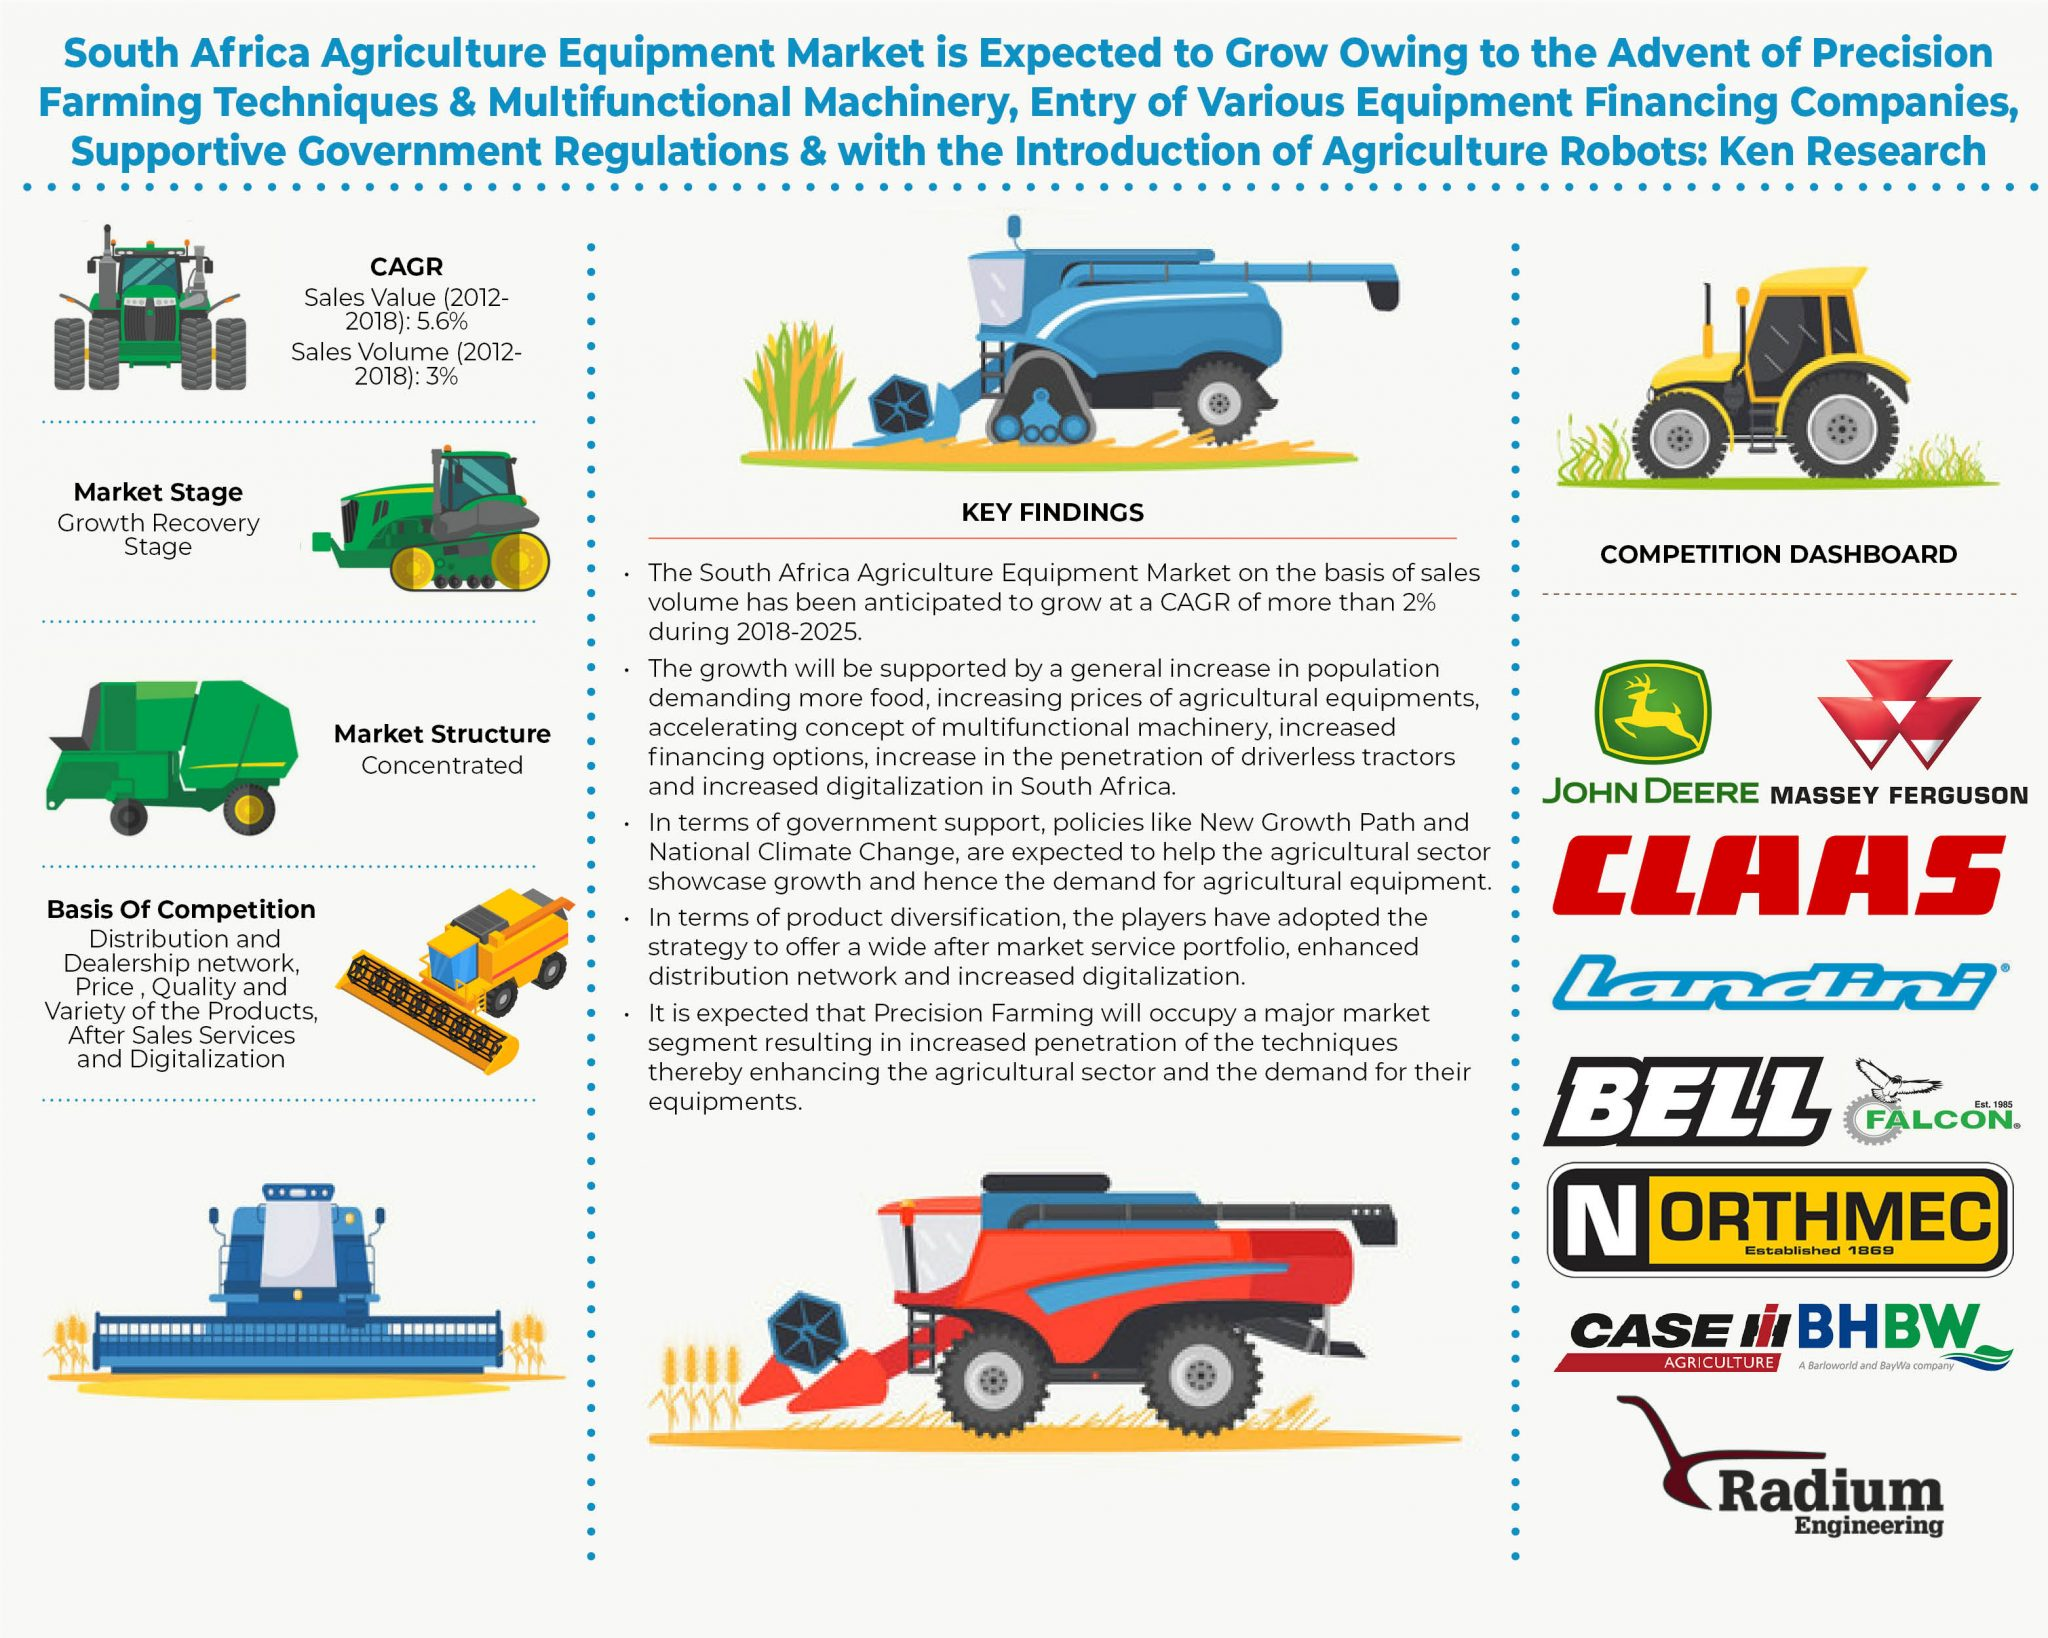 South Africa Tractor Major Companies, Mahindra Tractor